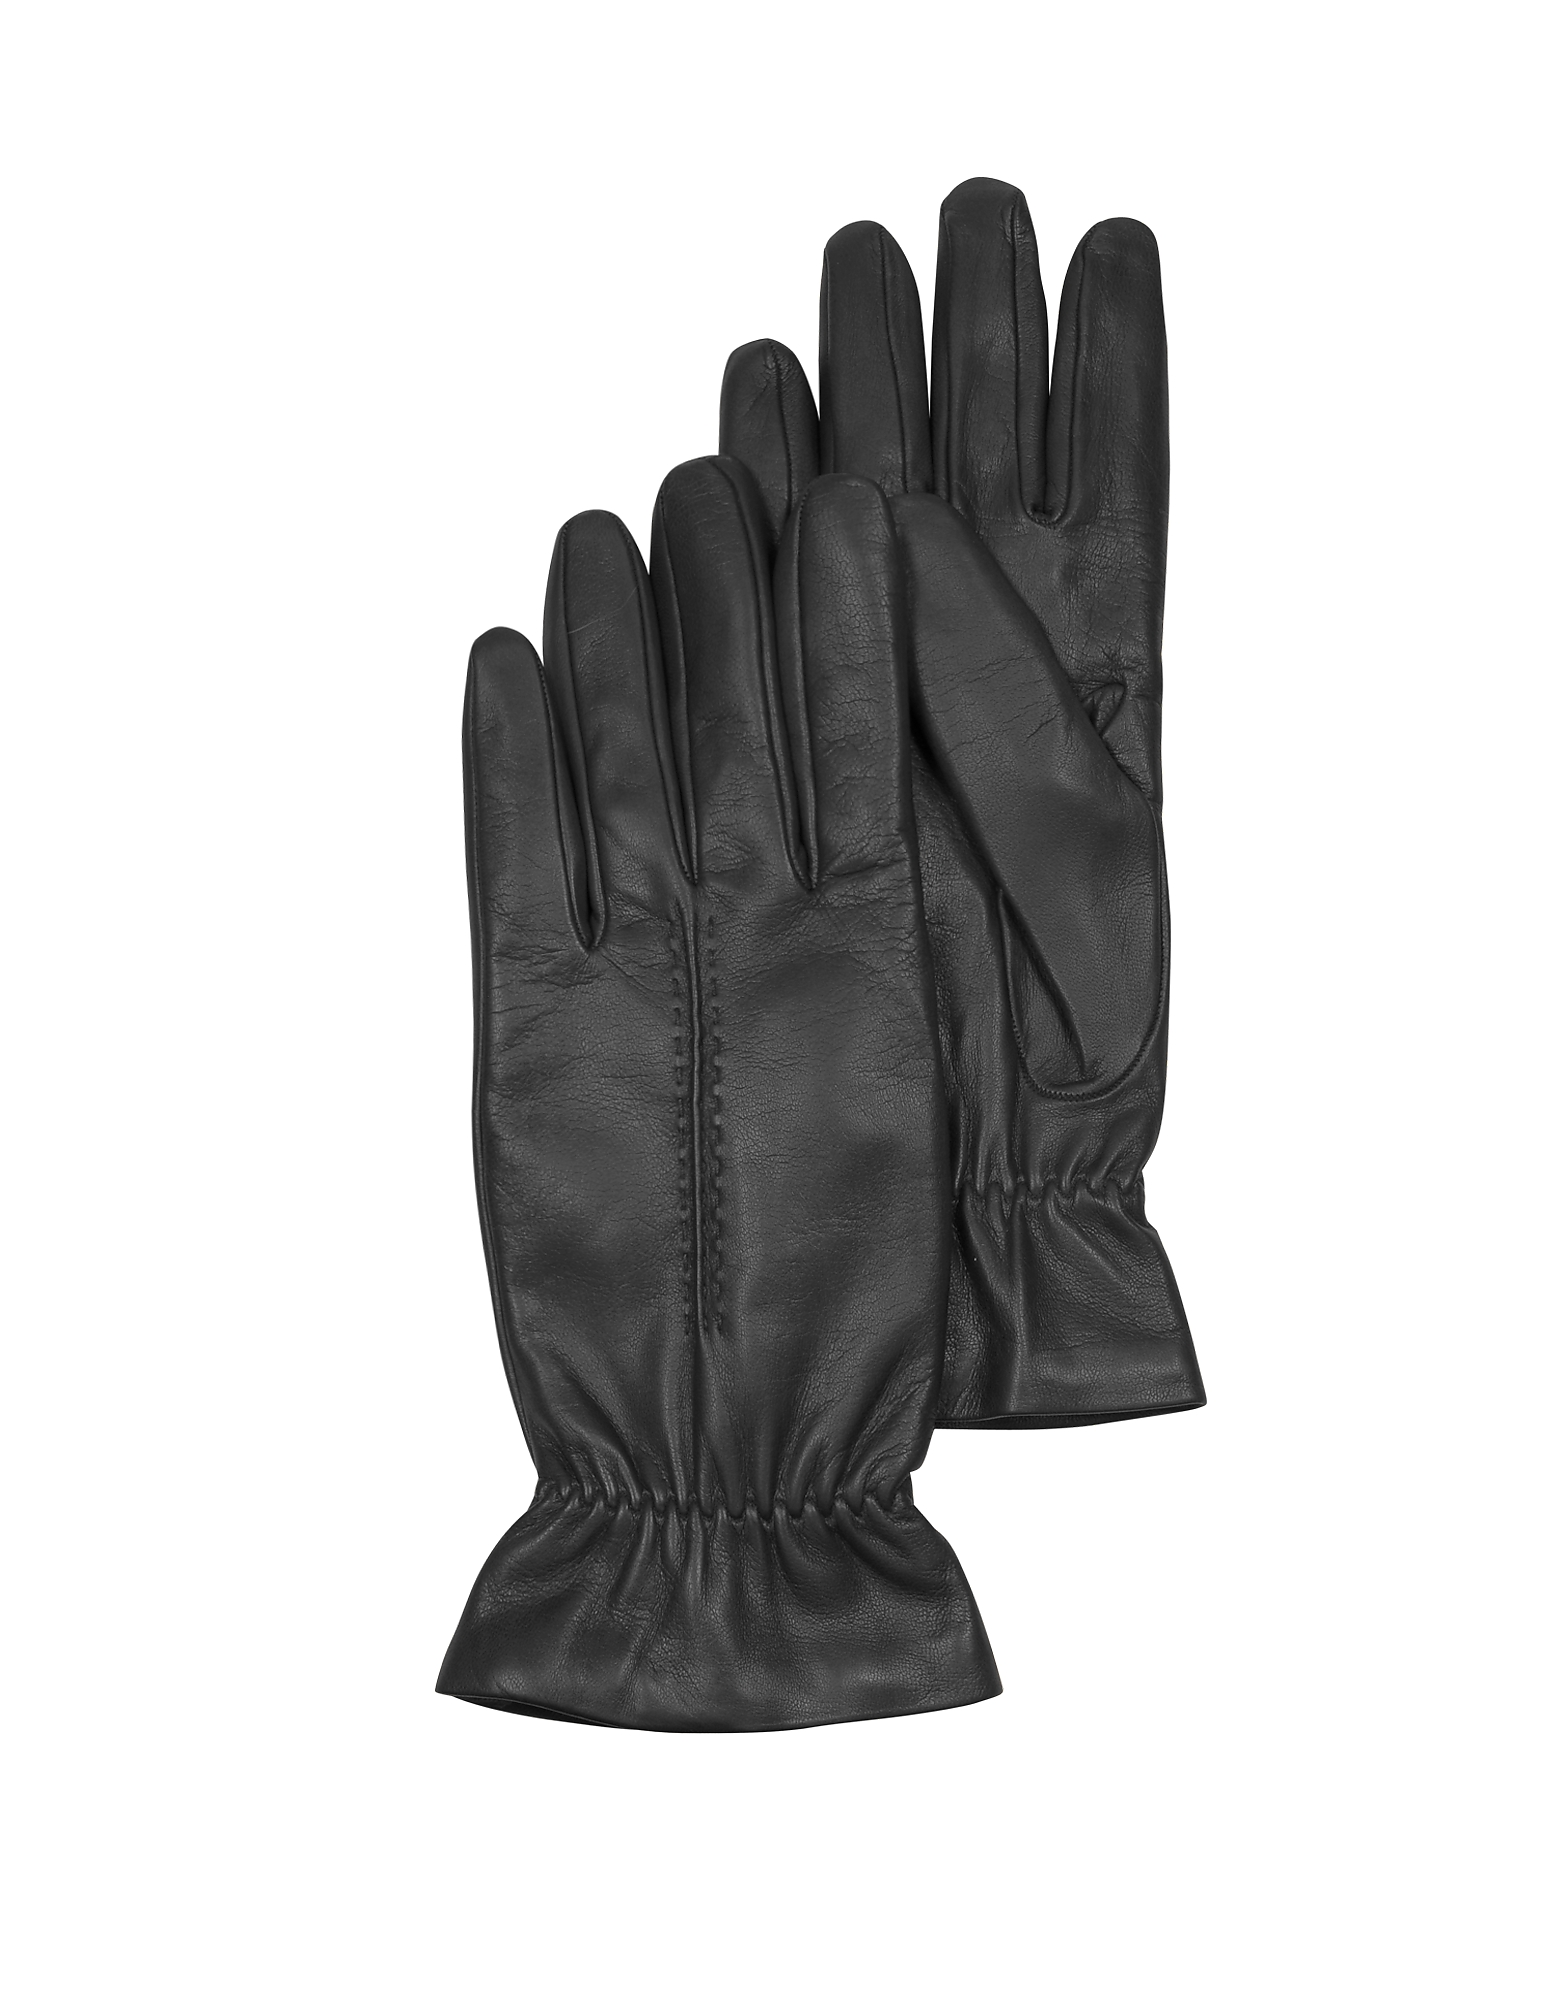 Black Leather Women's Gloves w/Wool Lining